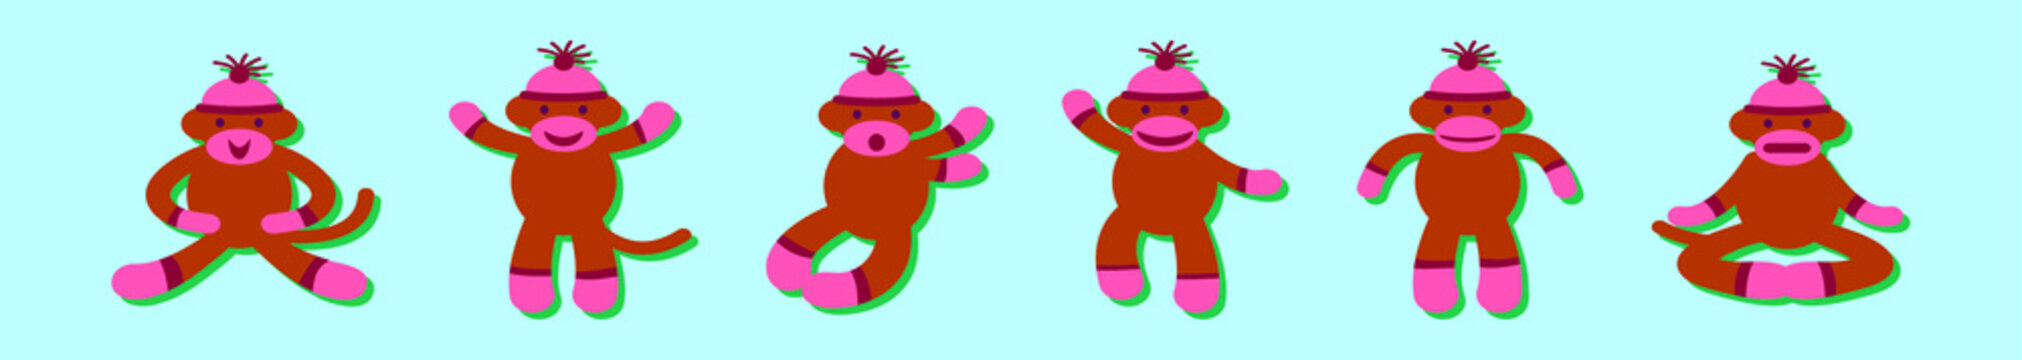 set of sock monkey cartoon icon design template with various models. vector illustration isolated on blue background